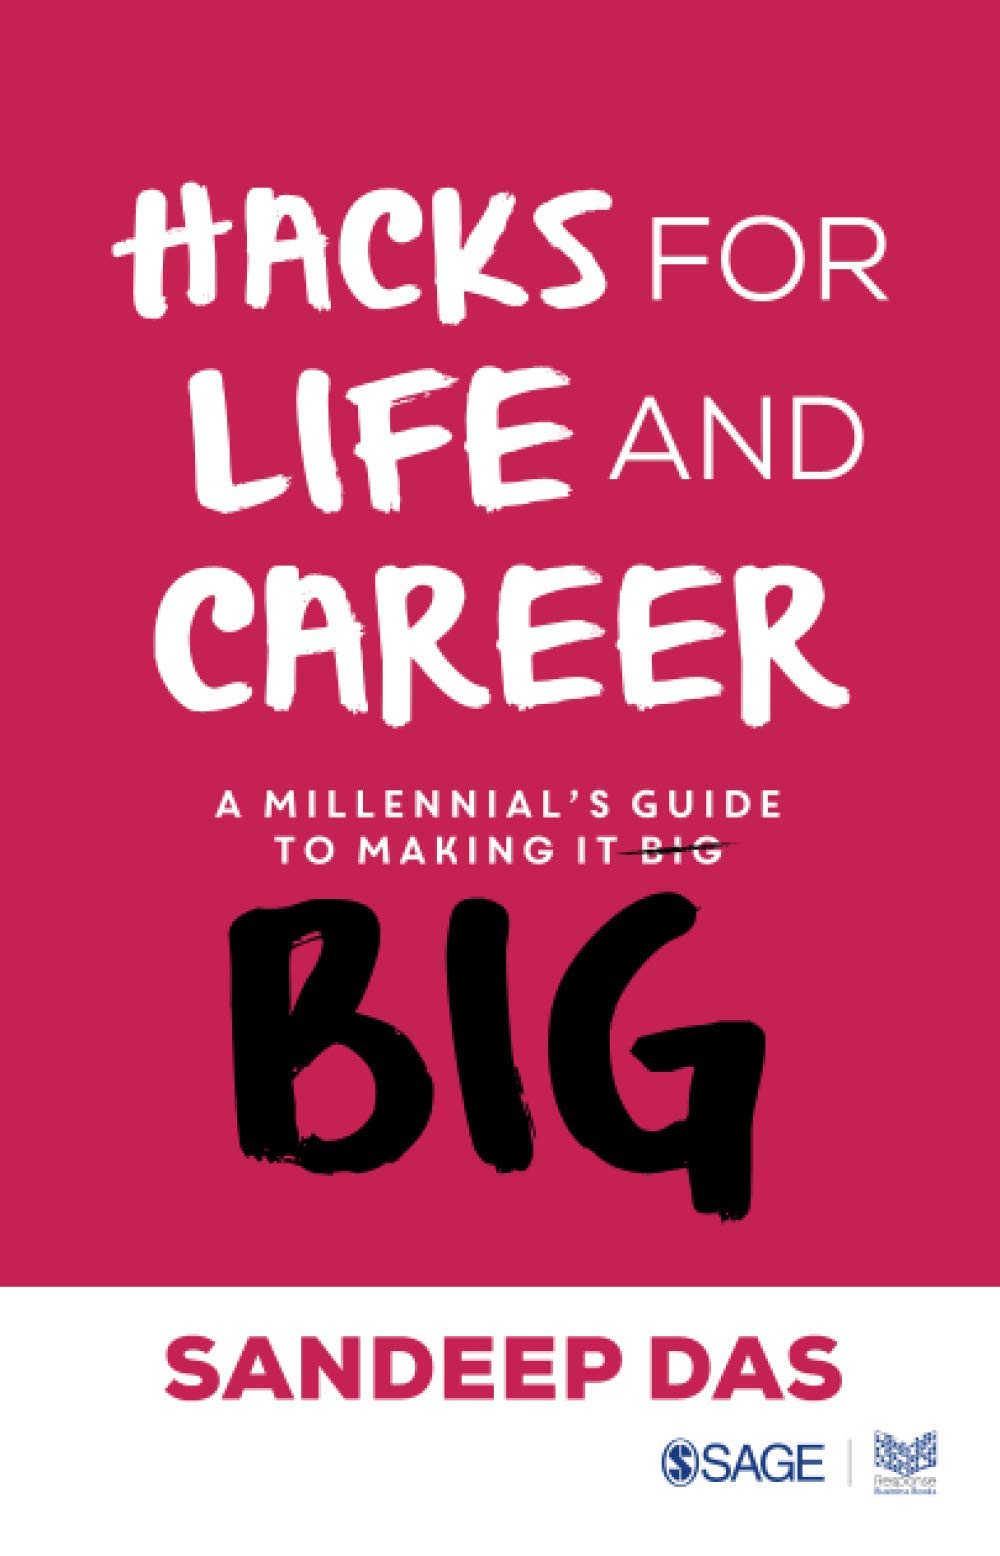 Hacks for Life and Career: A Millennial's Guide to Making It Big